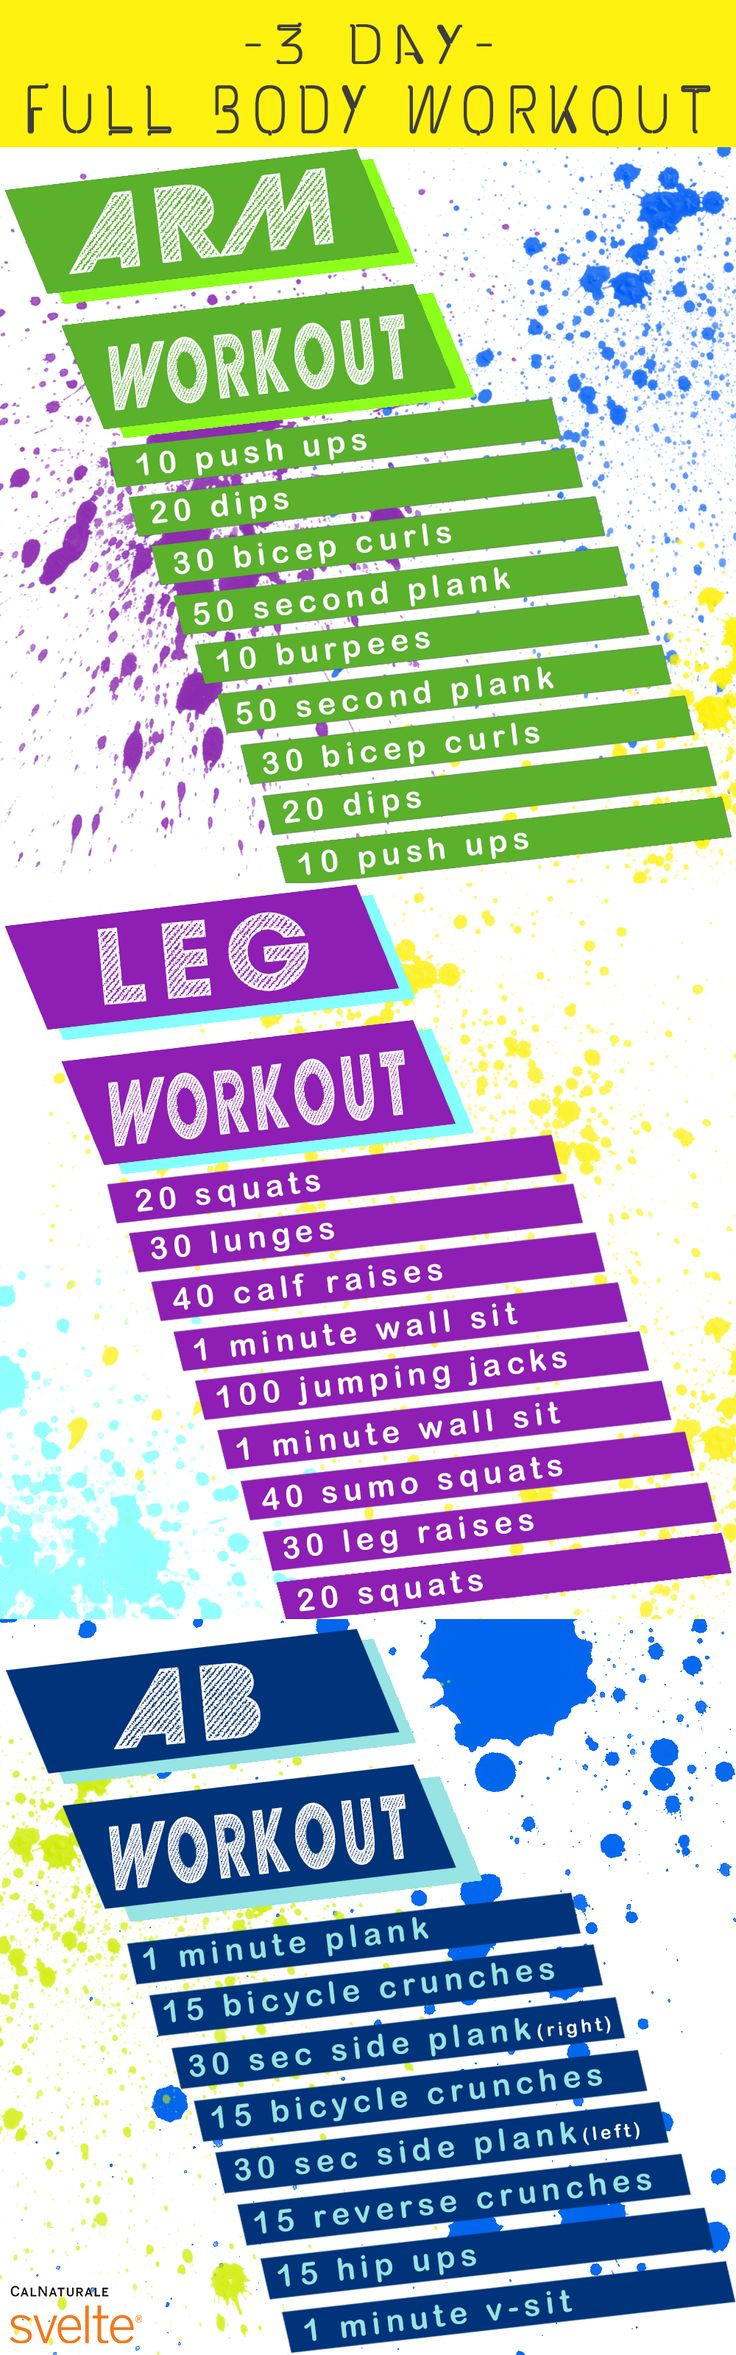 Use this handy 3-day whole body workout program to tone your arms, legs, and abs! #FitnessFriday